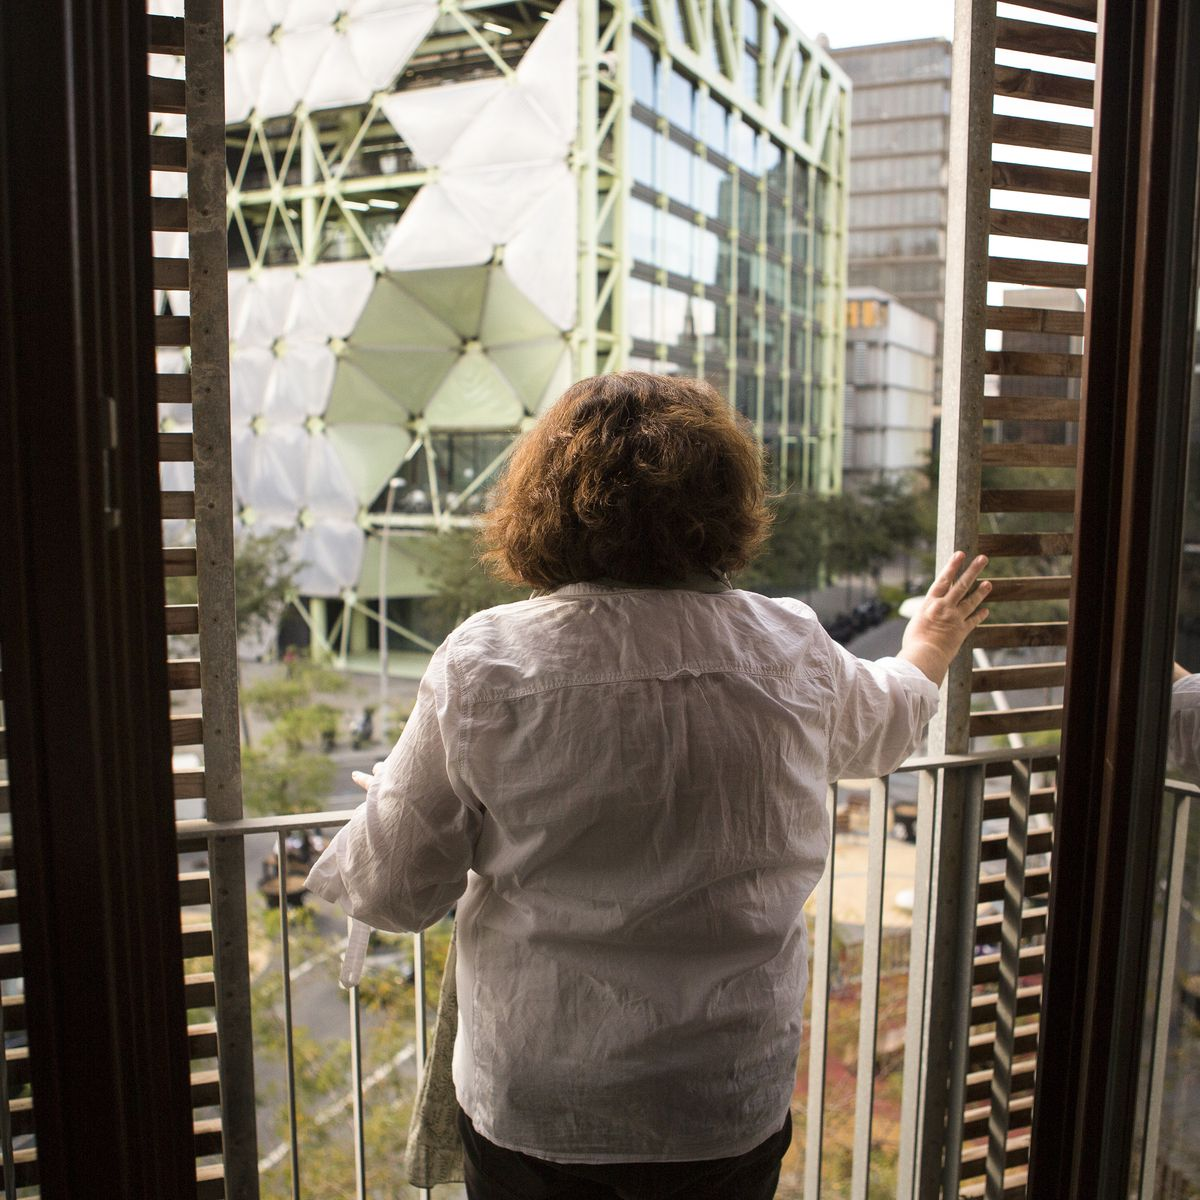 Pilar, a local resident, looks out from her apartment window onto the Poblenou superblock.